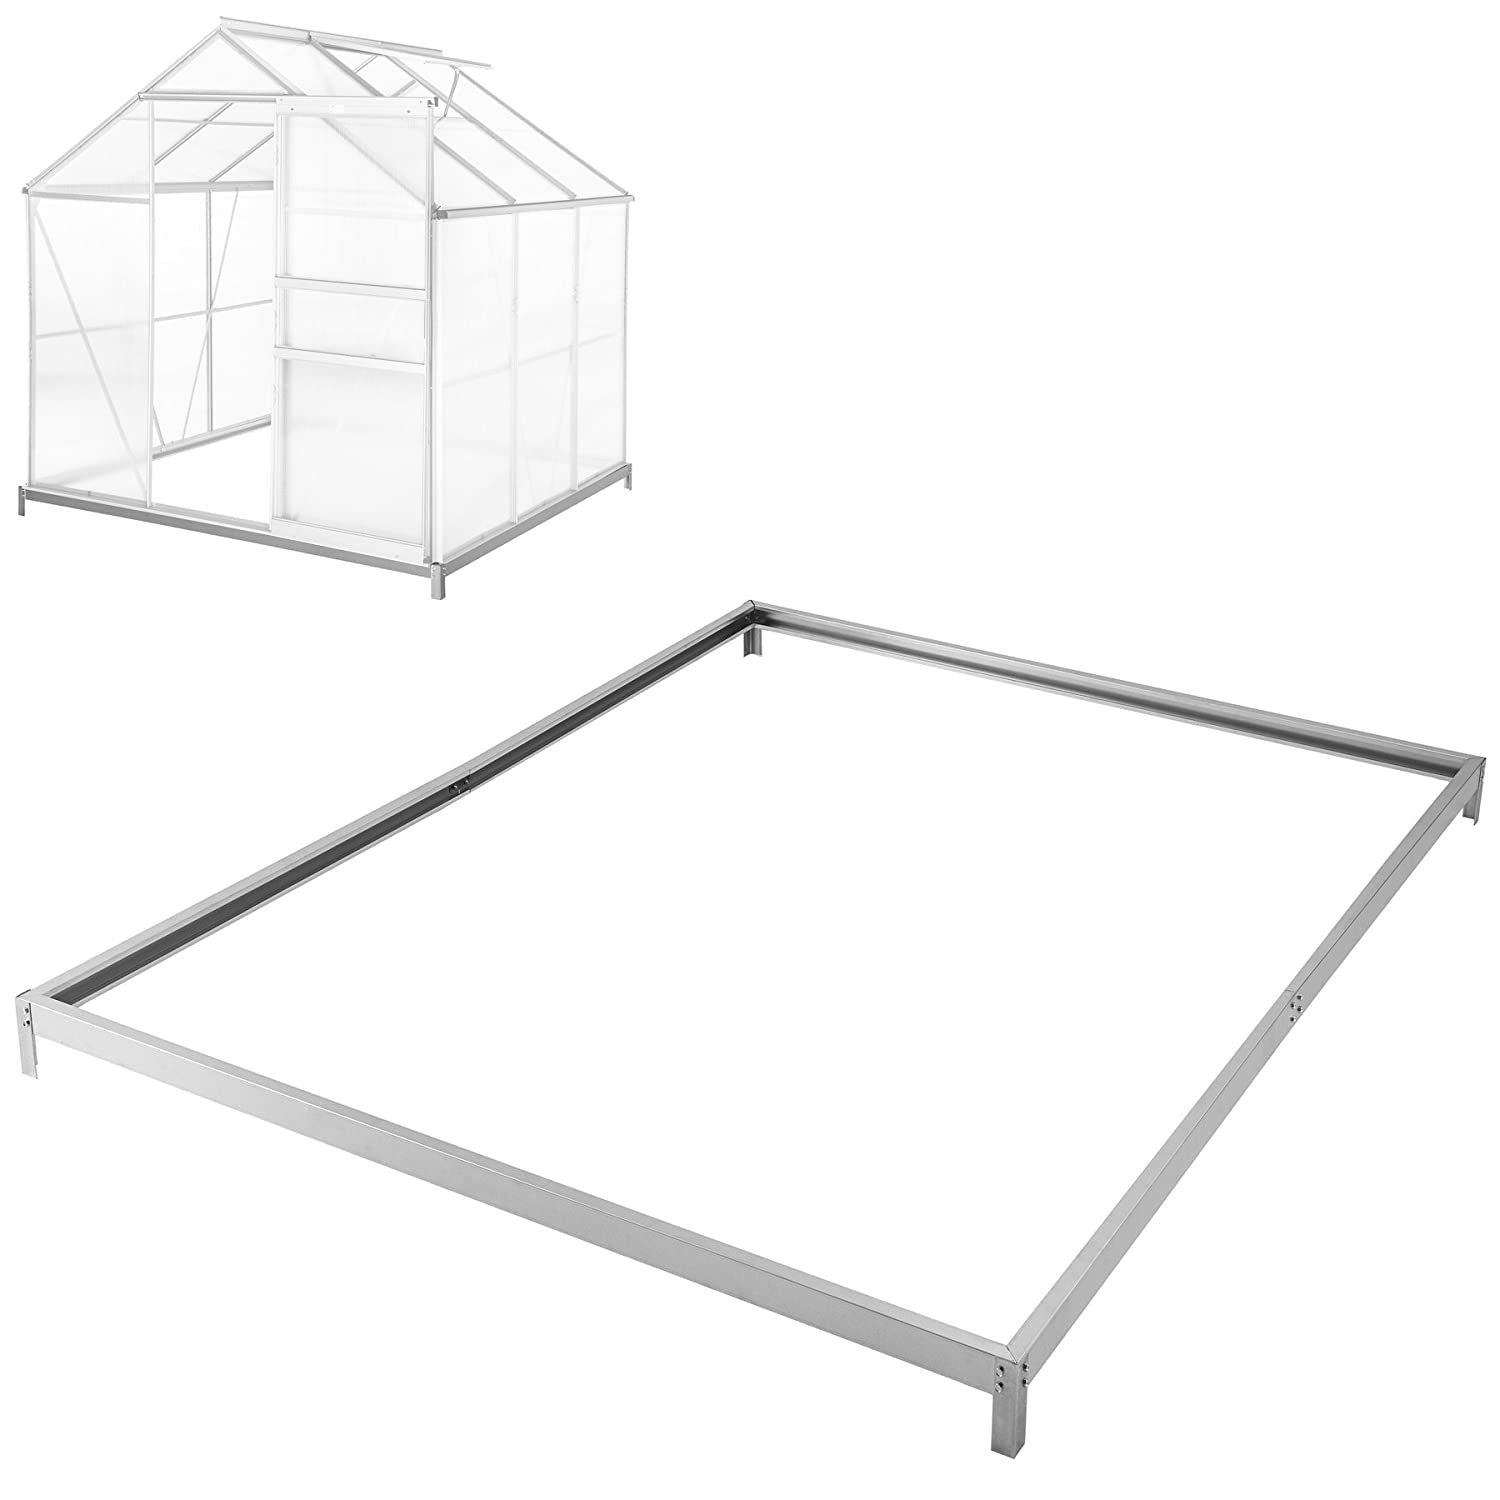 TecTake Greenhouse base foundation 190x190x12 cm steel galvanized frame base fixation